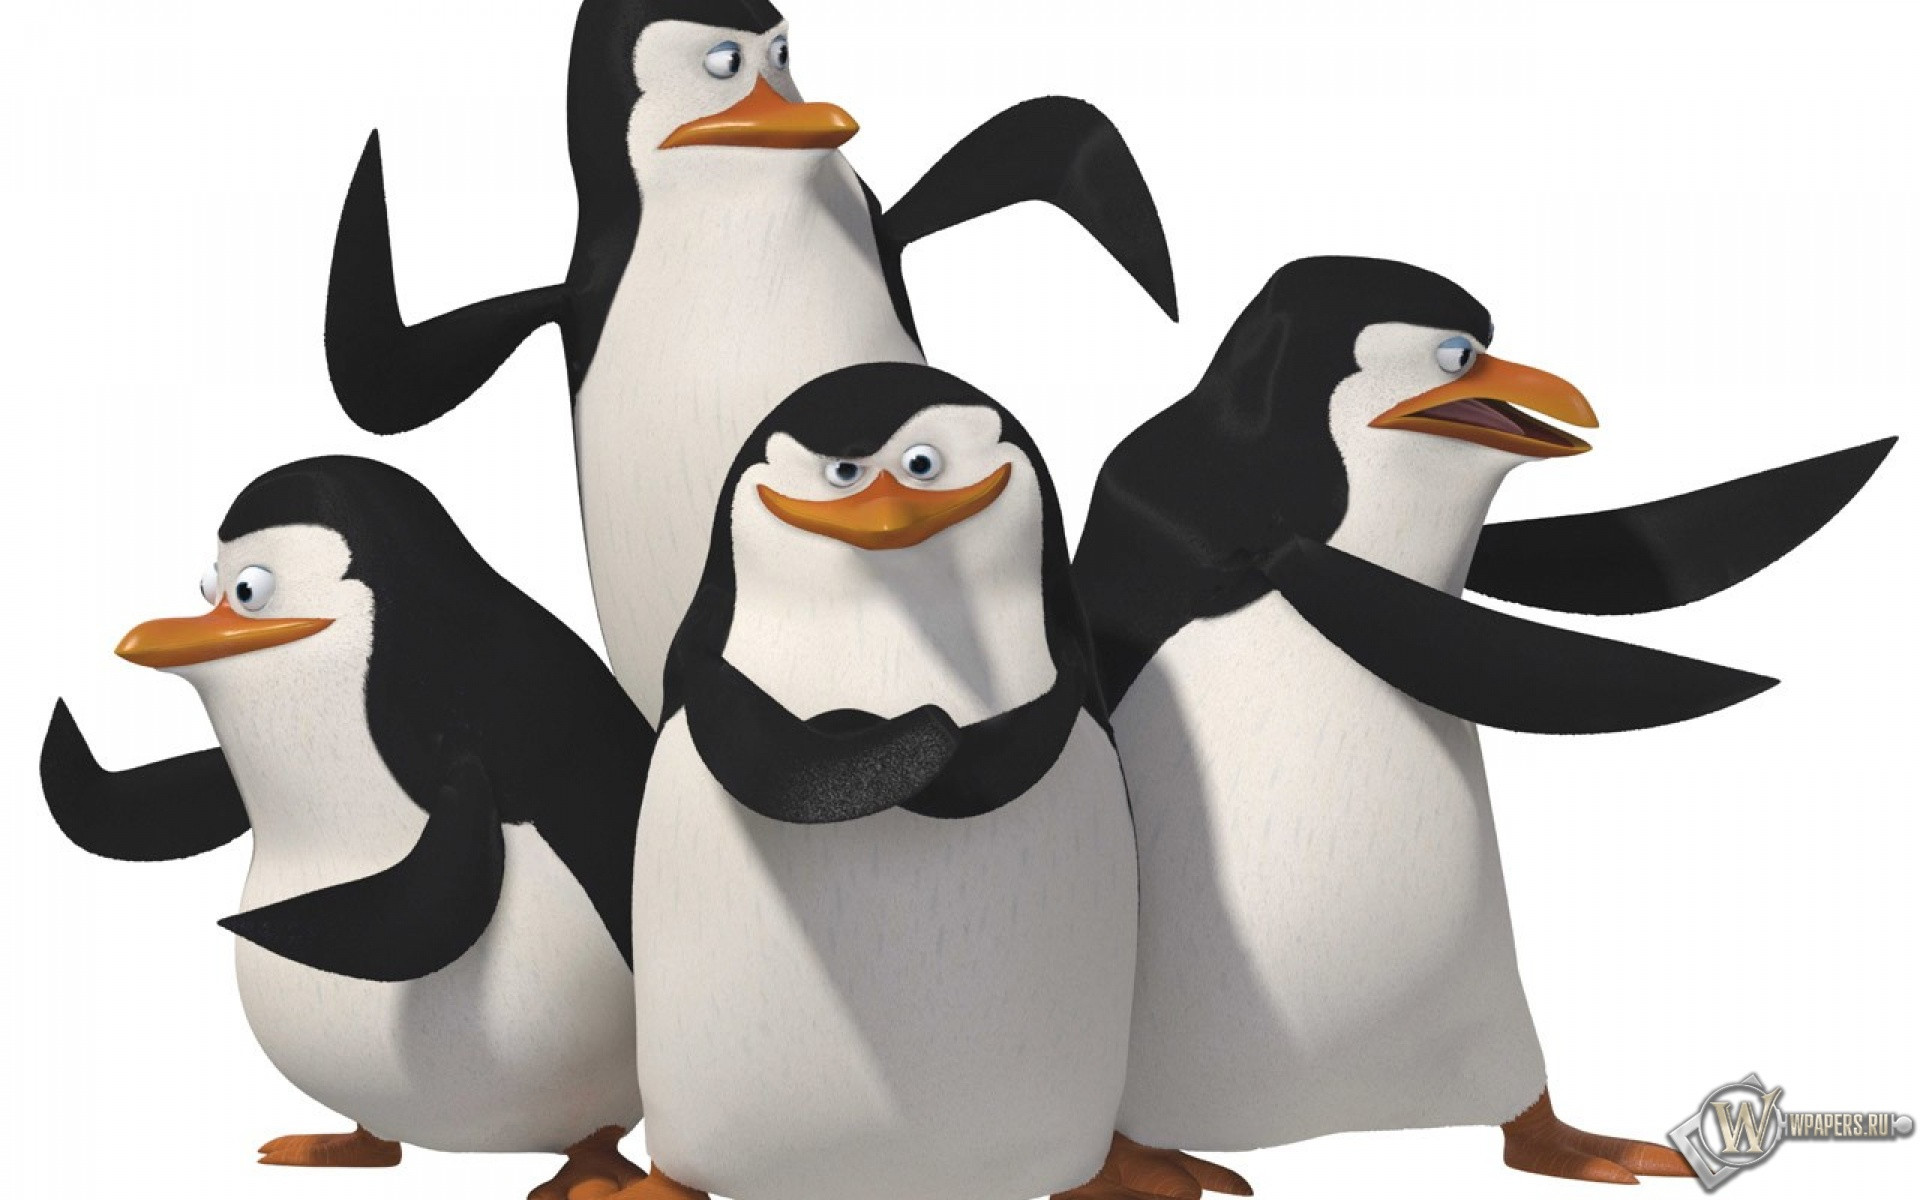 the-penguins-of-madagascar-wallpaper